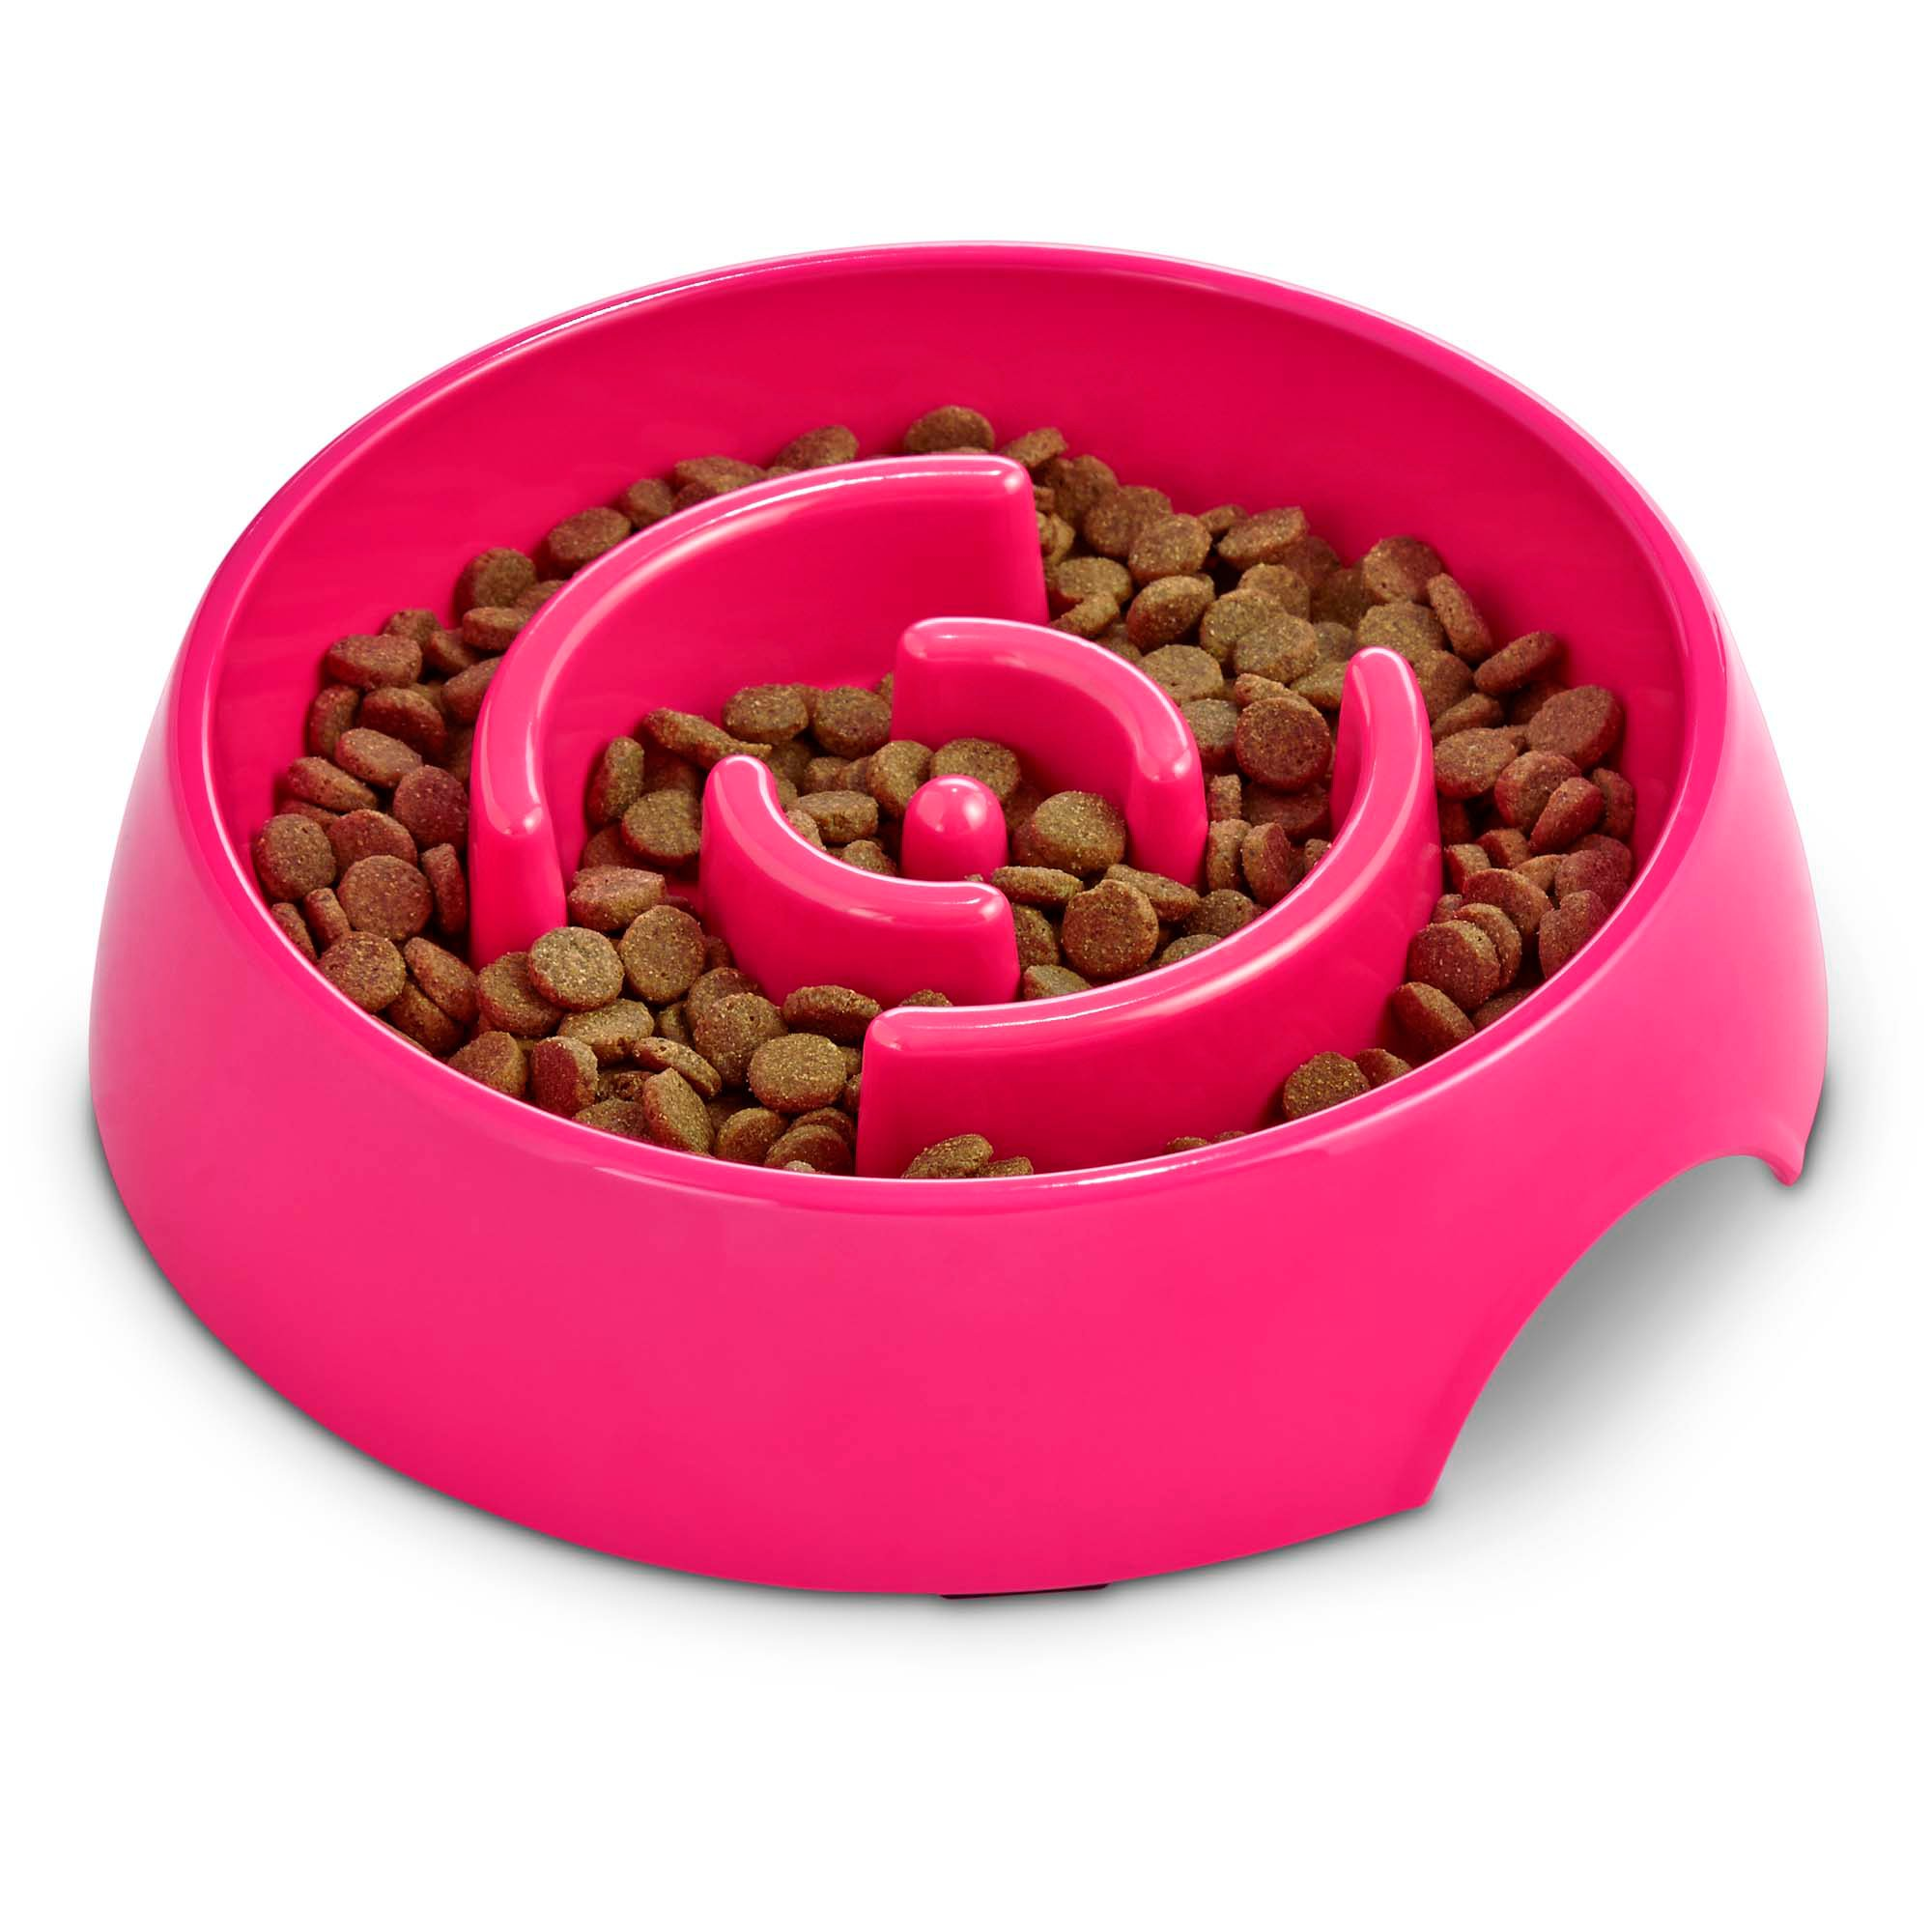 loving product feeding by open slow zoom up dogs stopper to for bowl pets gobble dog feeder video images in slows